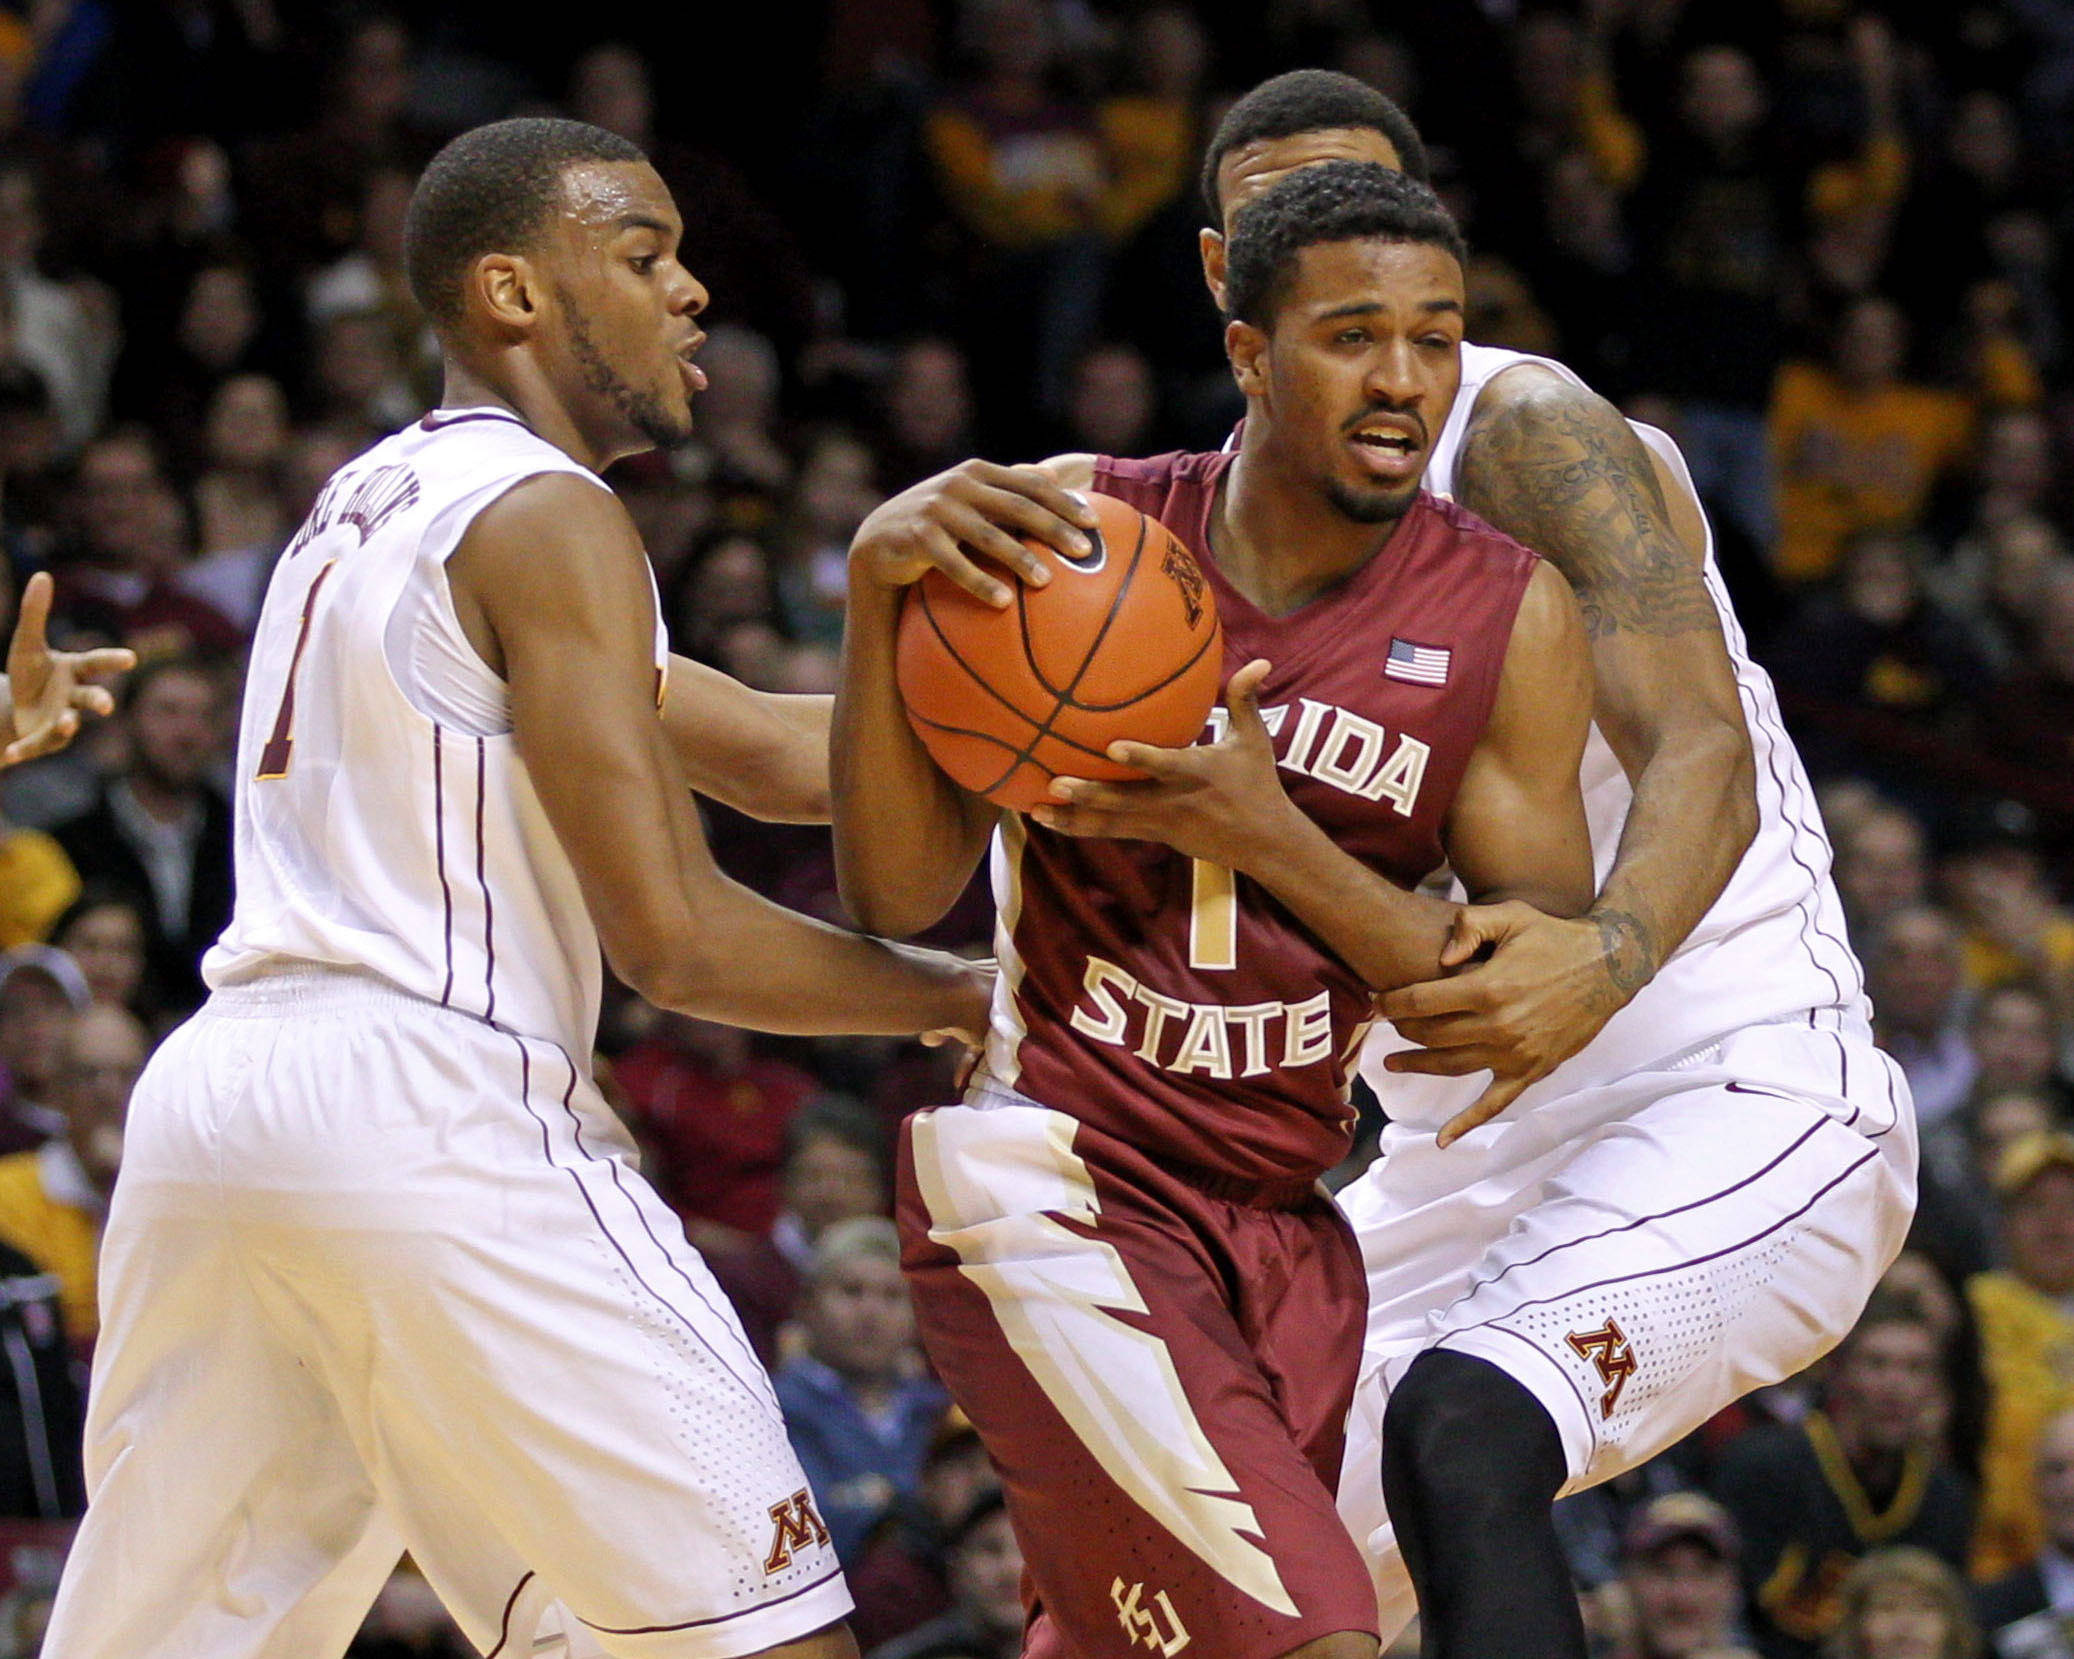 Dec 3, 2013; Minneapolis, MN, USA; Florida State Seminoles guard Devon Bookert (1) guarded by Minnesota Golden Gophers guard Andre Hollins (1) and forward Maurice Walker (15) during the first half at Williams Arena. Mandatory Credit: Brace Hemmelgarn-USA TODAY Sports